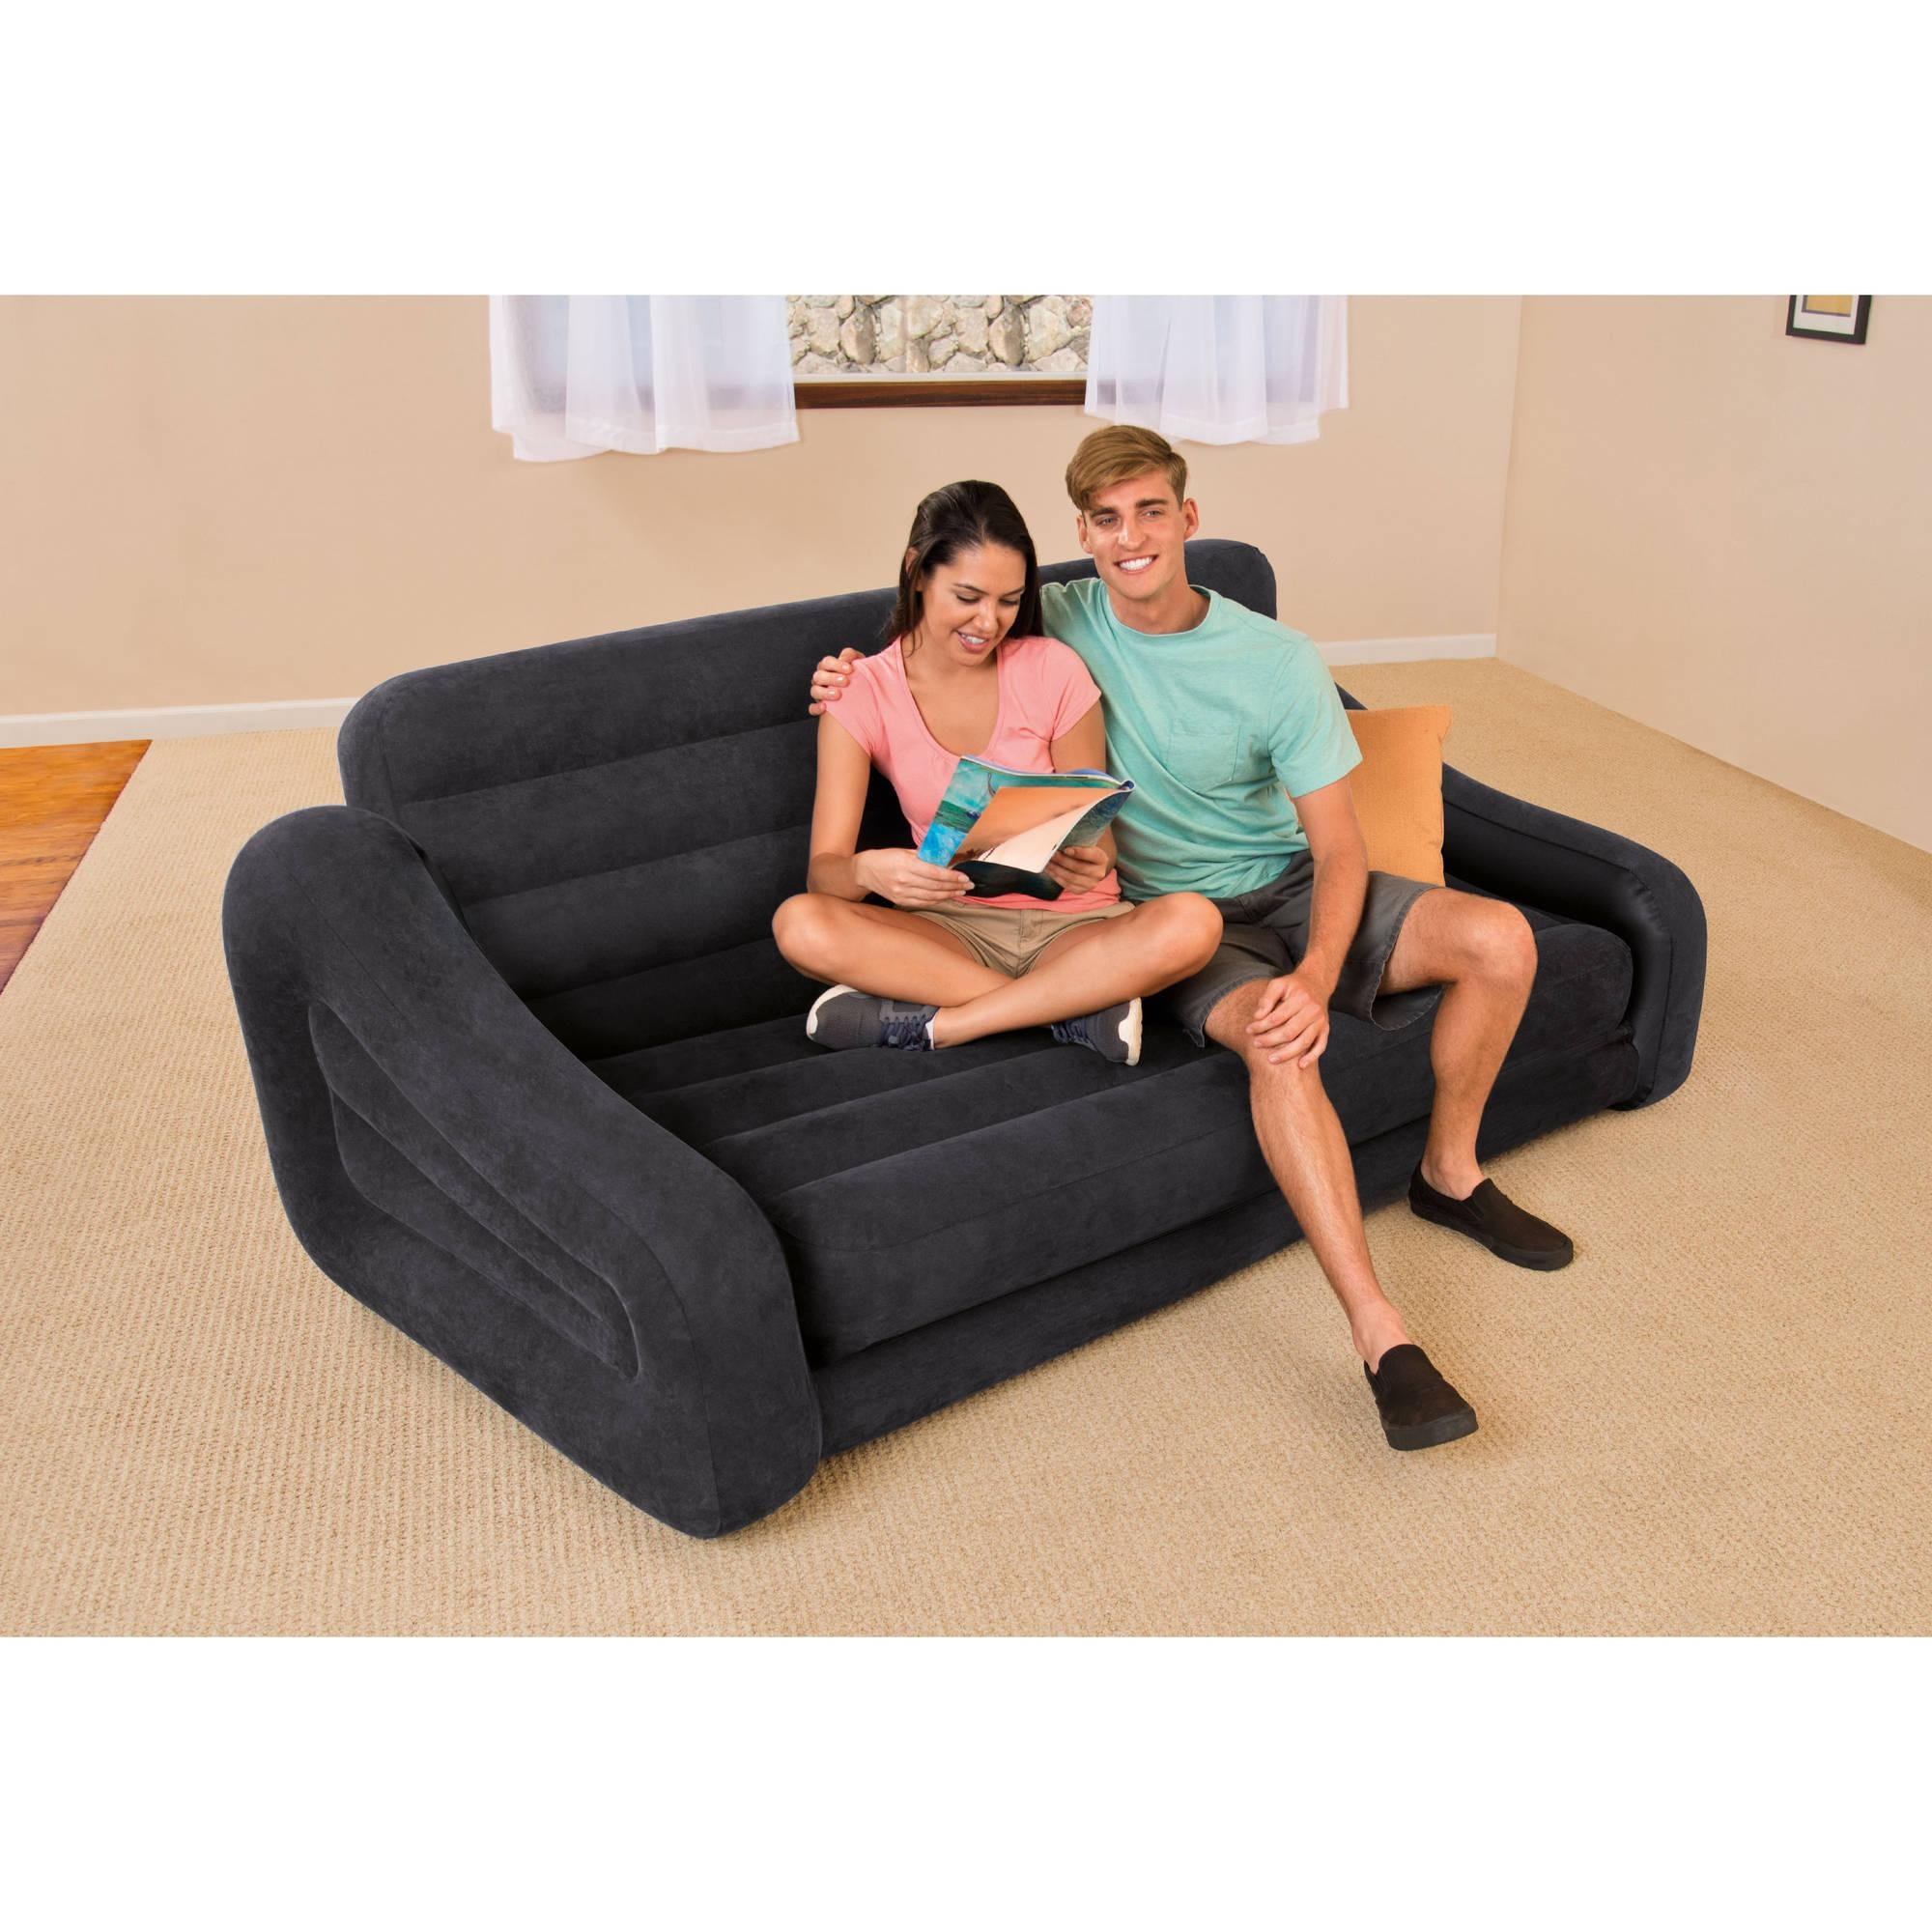 Intex Queen Inflatable Pull Out Sofa Bed – Walmart Intended For Inflatable Sofas And Chairs (Image 16 of 20)